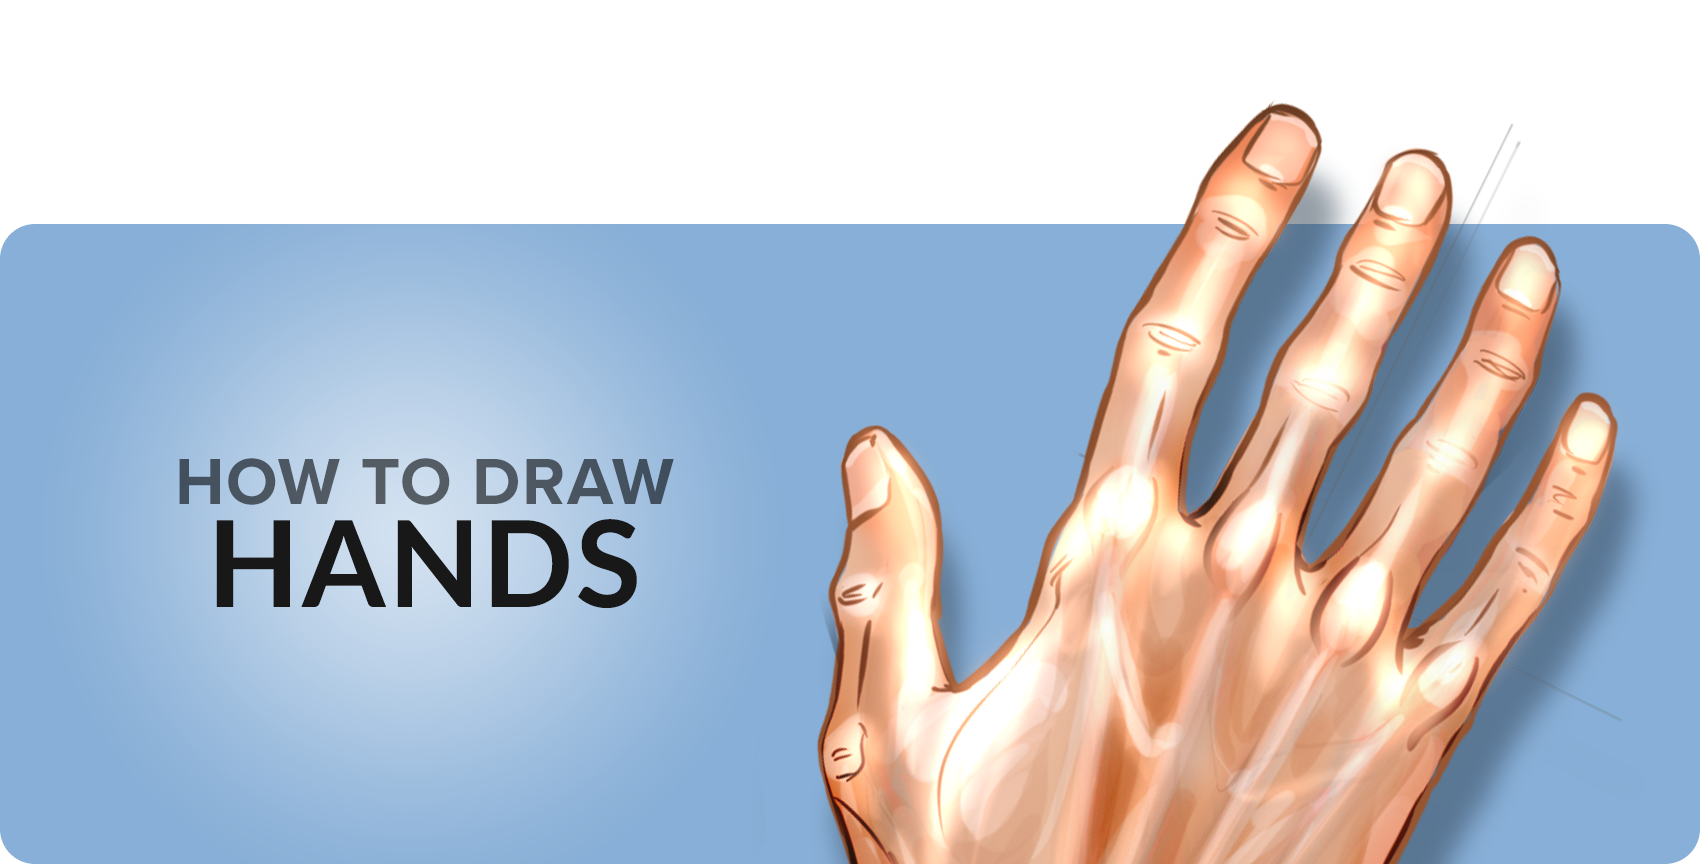 How to draw hands. Fingers drawing svg black and white